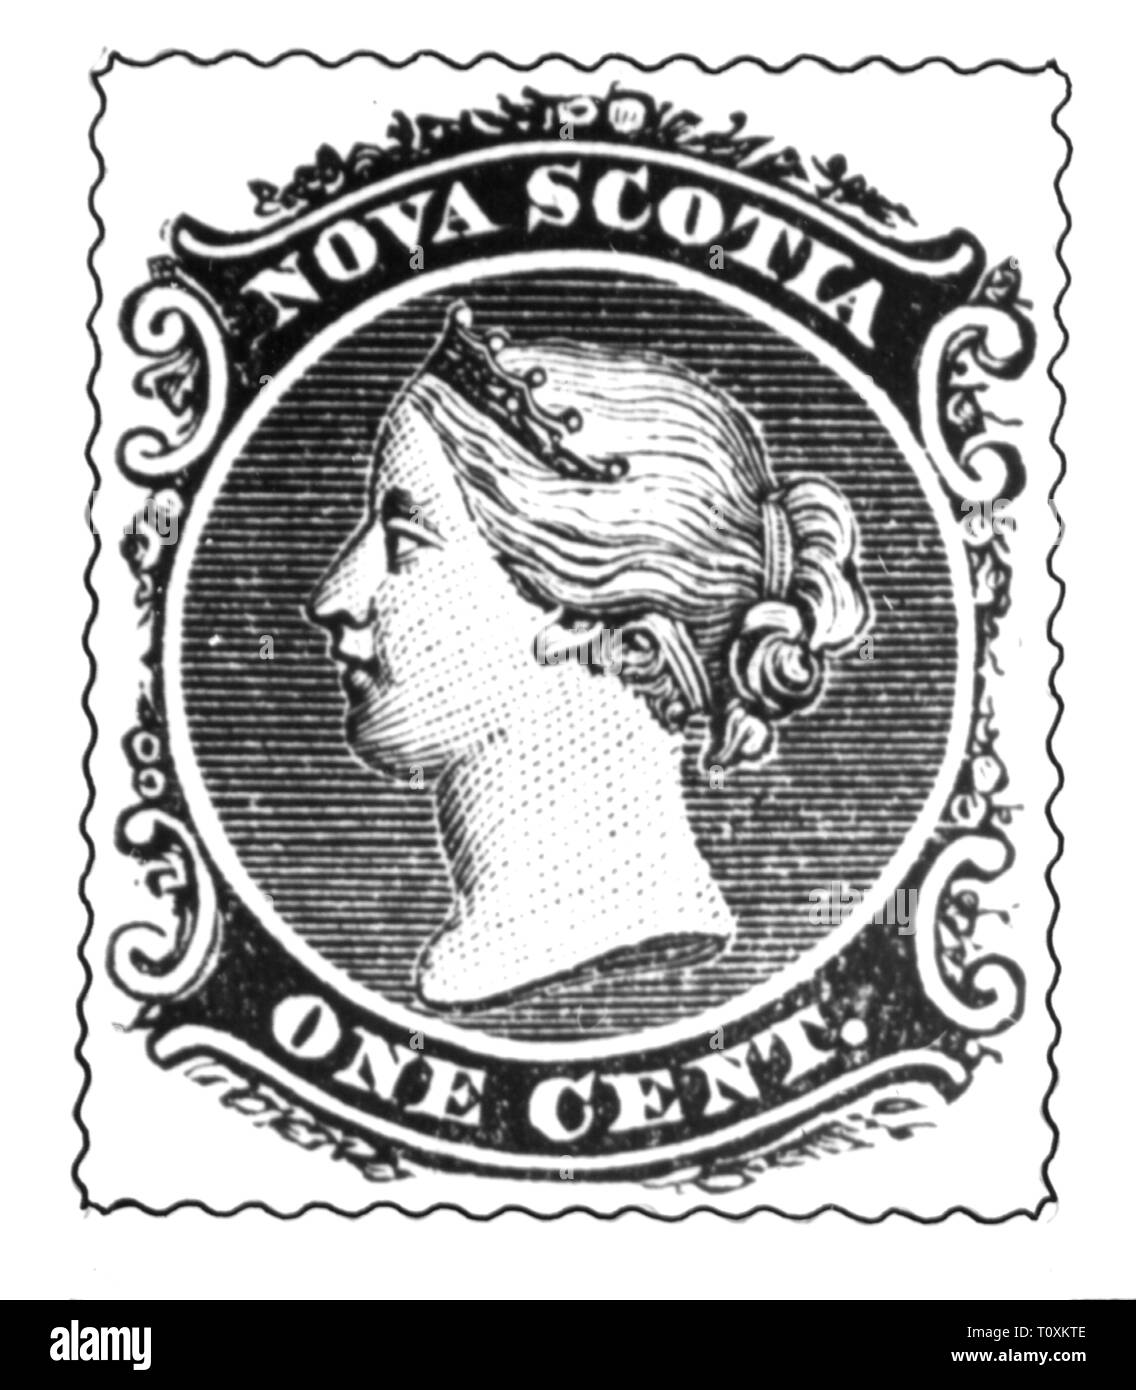 mail, postage stamps, Canada, Nova Scotia, 1 cent postage stamp, portrait of Queen Victoria I, date of issue: 1860, Additional-Rights-Clearance-Info-Not-Available - Stock Image